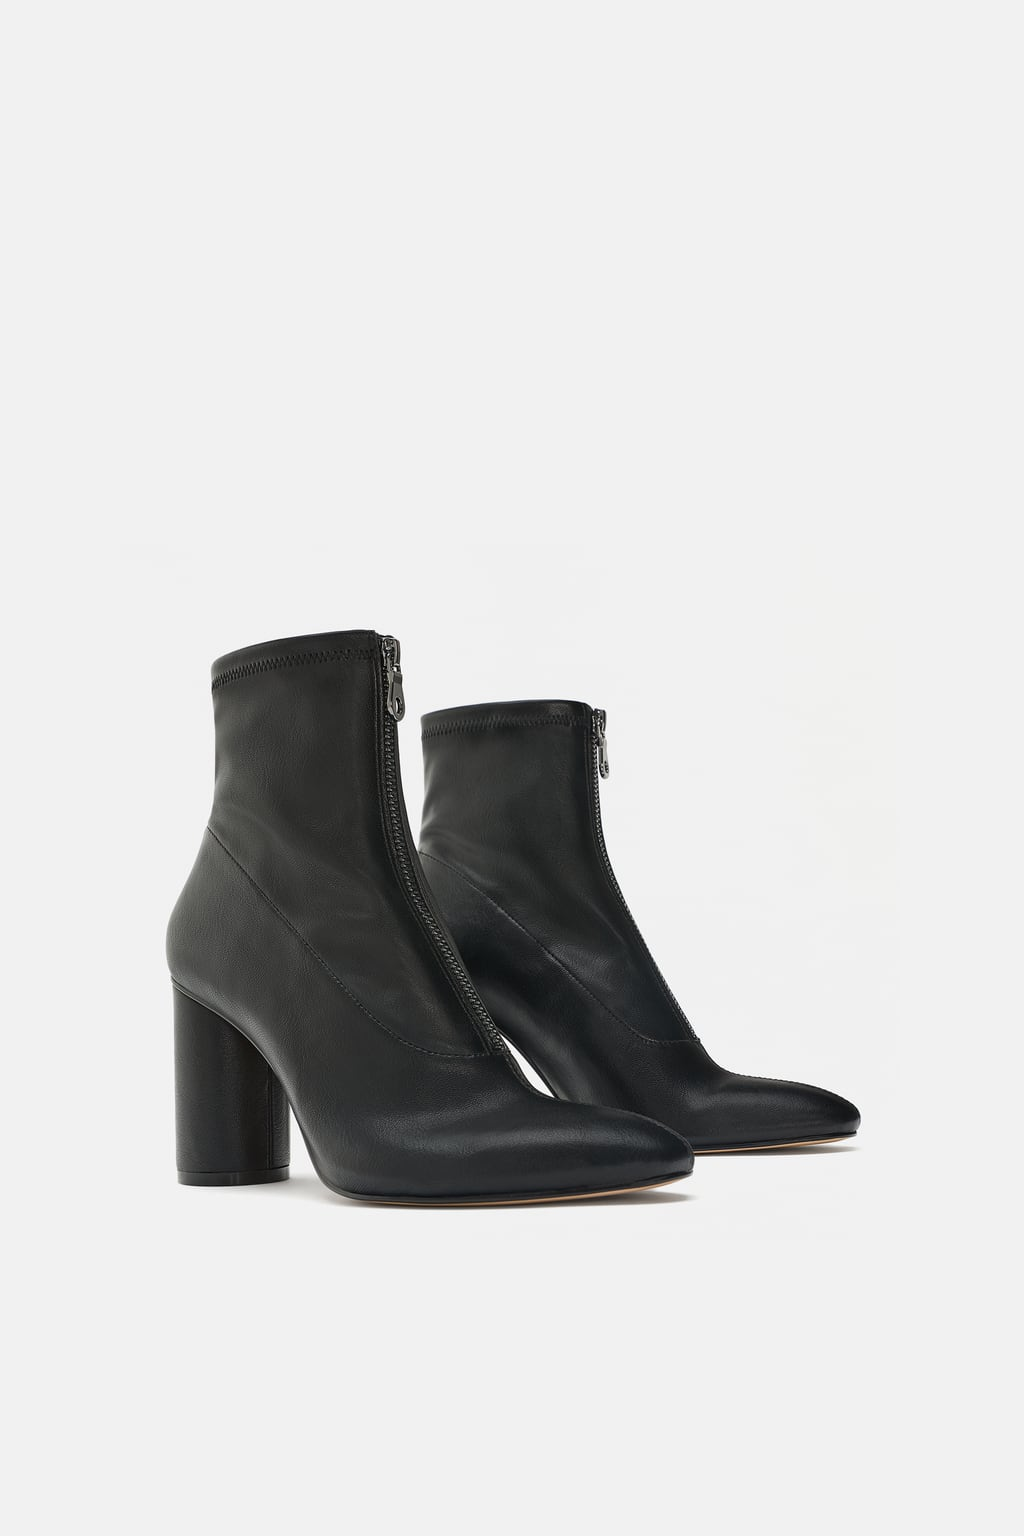 Shoes Zara -